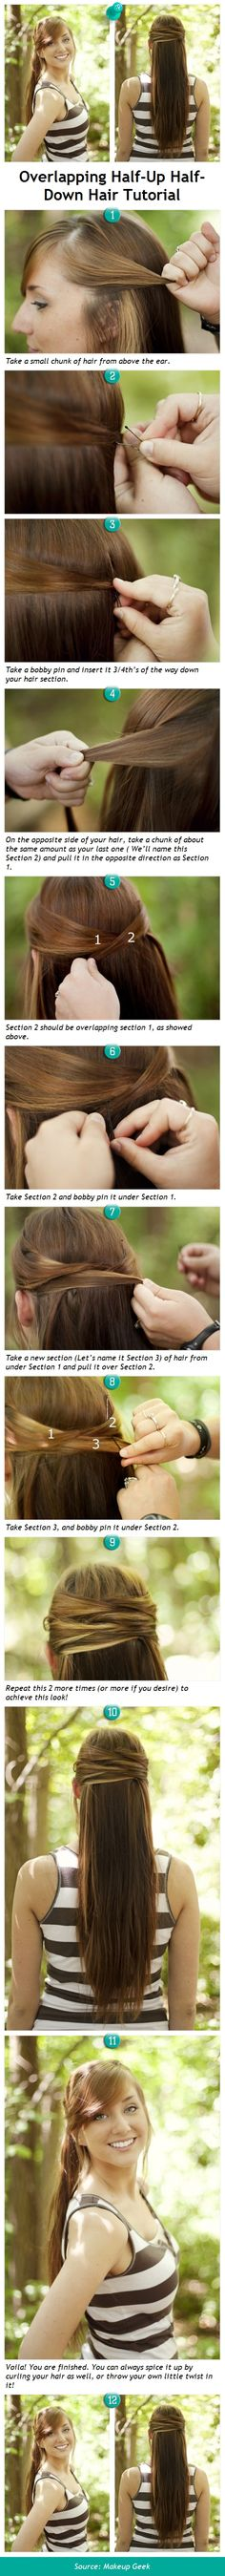 Overlapping Half-Up Half-Down Hair Tutorial - Pindemy